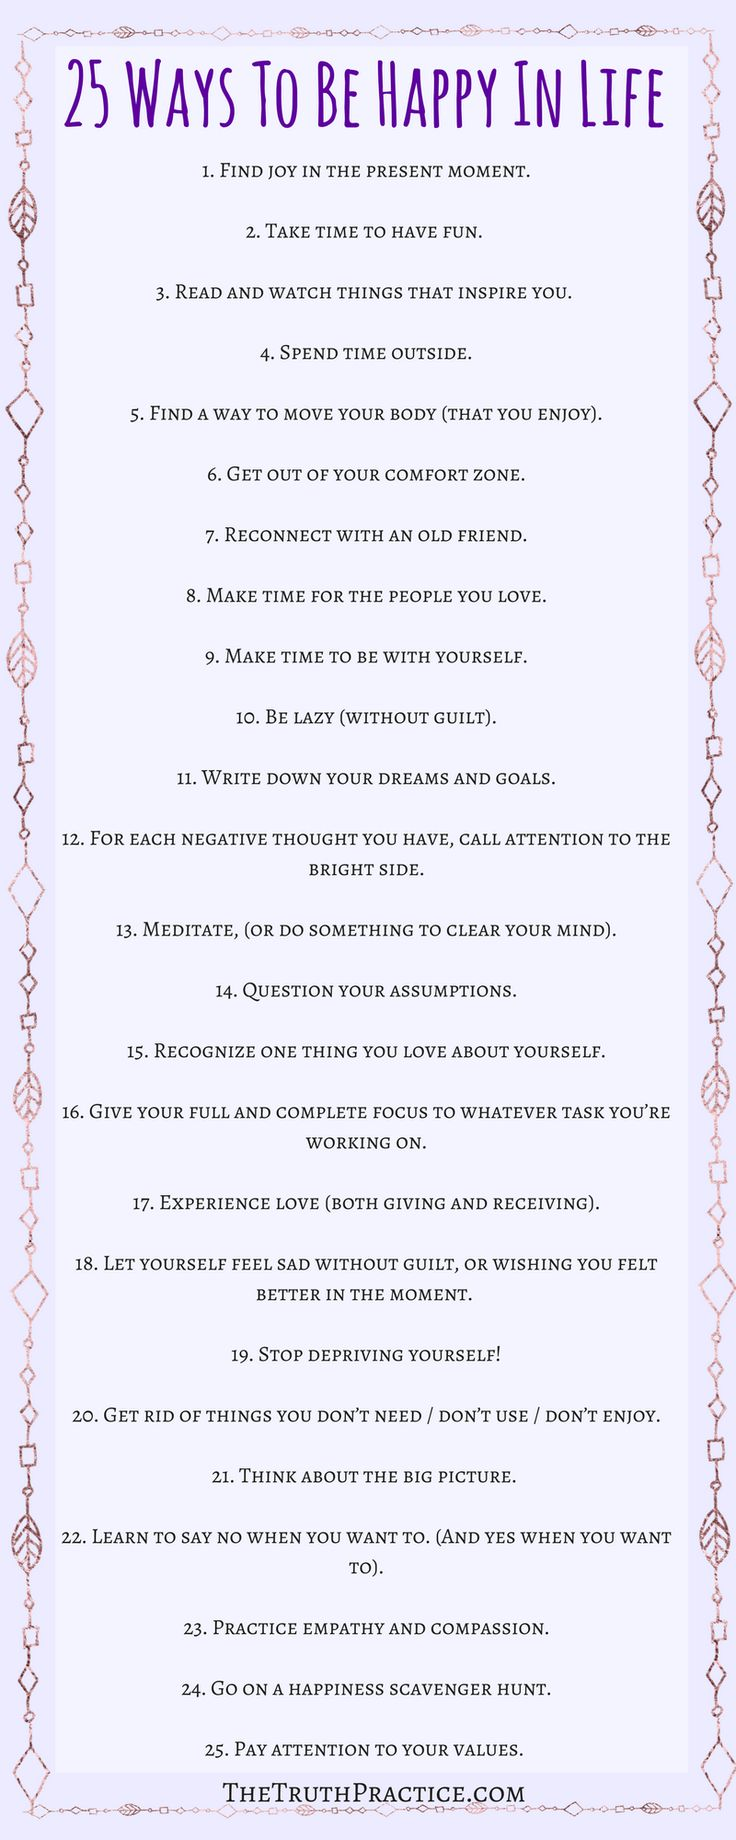 25 tips for how to be happy with yourself and life. Click the pin to read in depth tips on how to incorporate these tips into your daily life. You deserve to be happy. Get your FREE Inspiration Printable Checklist and Inspiration Journal Pages. Go to TheTruthPractice.com to read more about inspiration, authenticity, manifesting your dreams, self-love